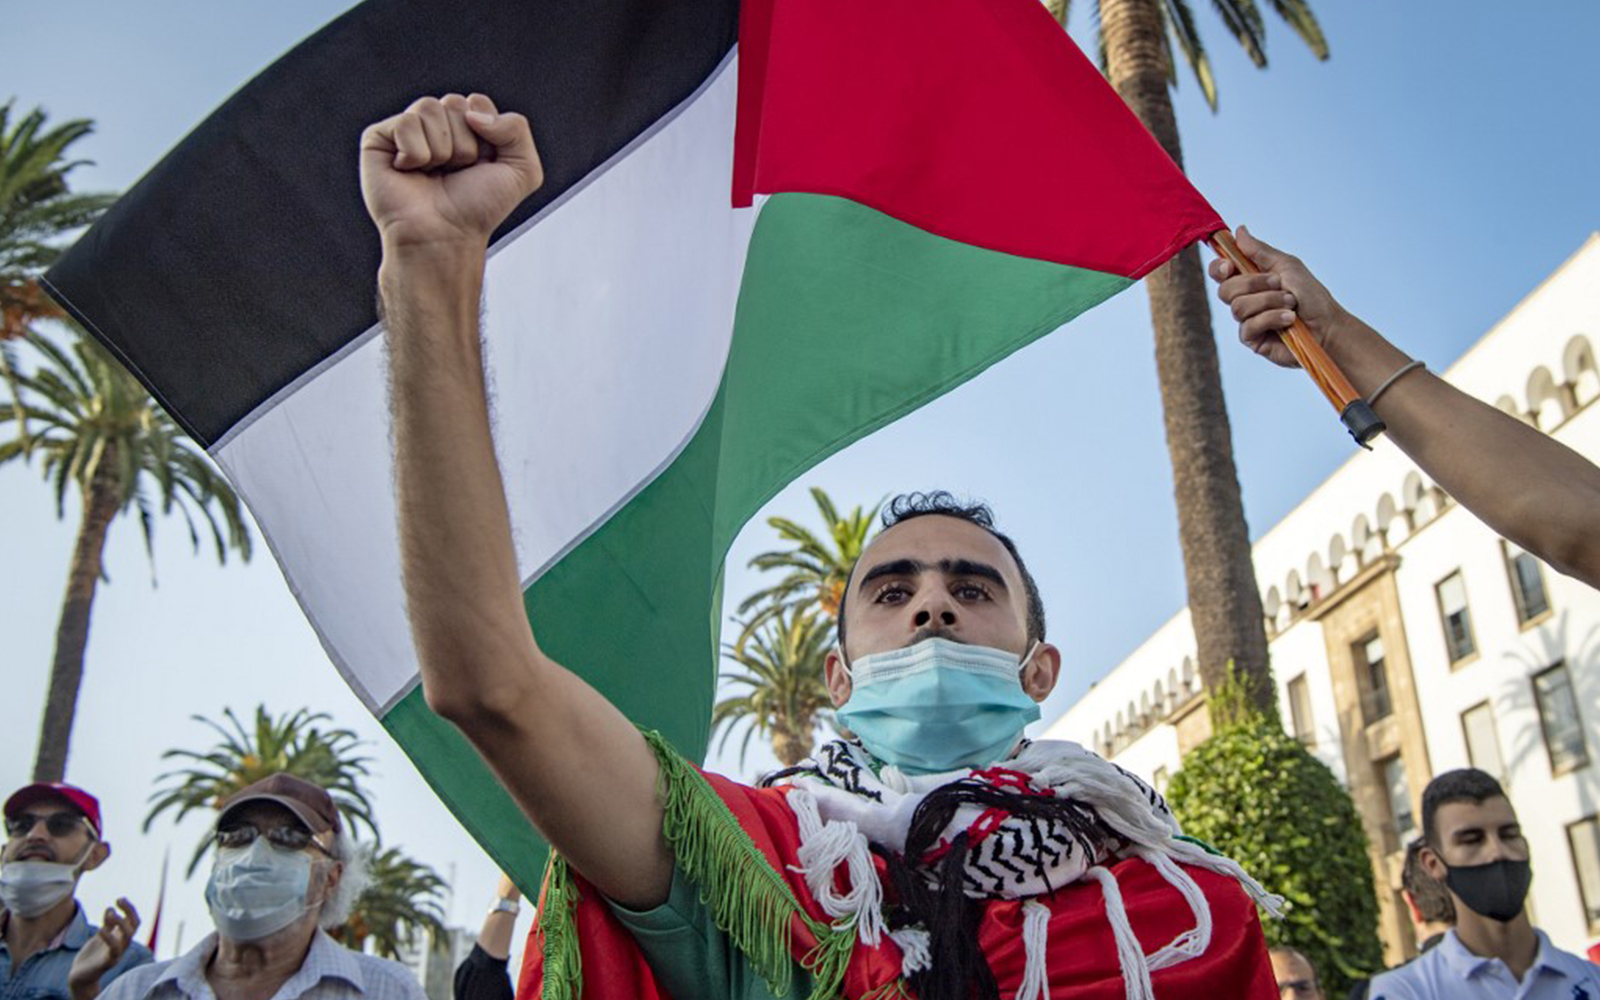 Moroccans protest 'Arab normalization' with Israel | The Times of Israel